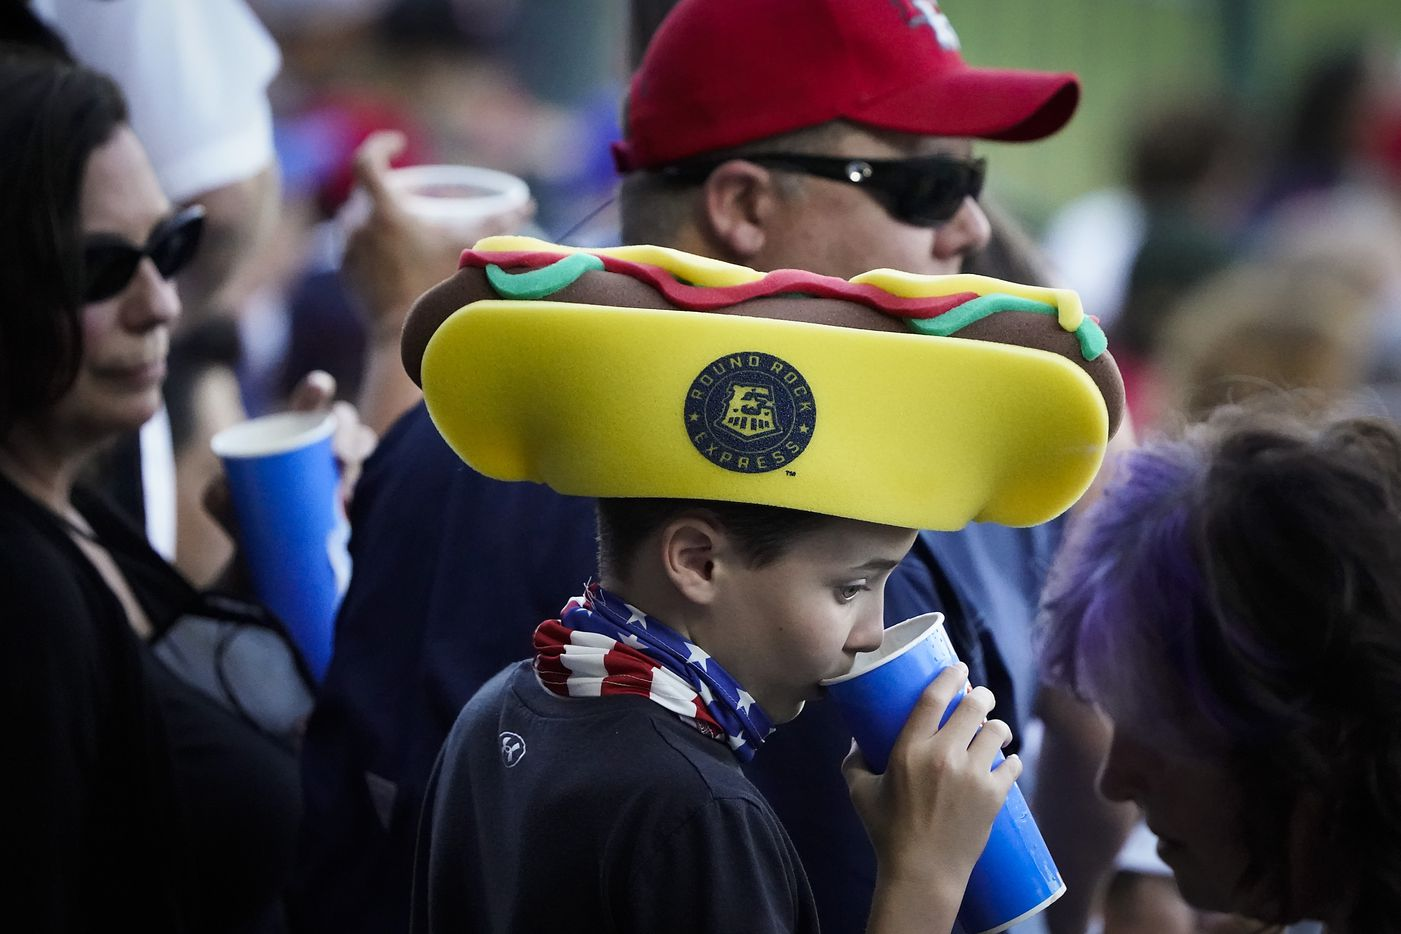 A young fan wears a foam hotdog hat during the first inning of the Round Rock Express season opener against the Oklahoma City Dodgers at Dell Diamond on Thursday, May 6, 2021, in Round Rock, Texas.